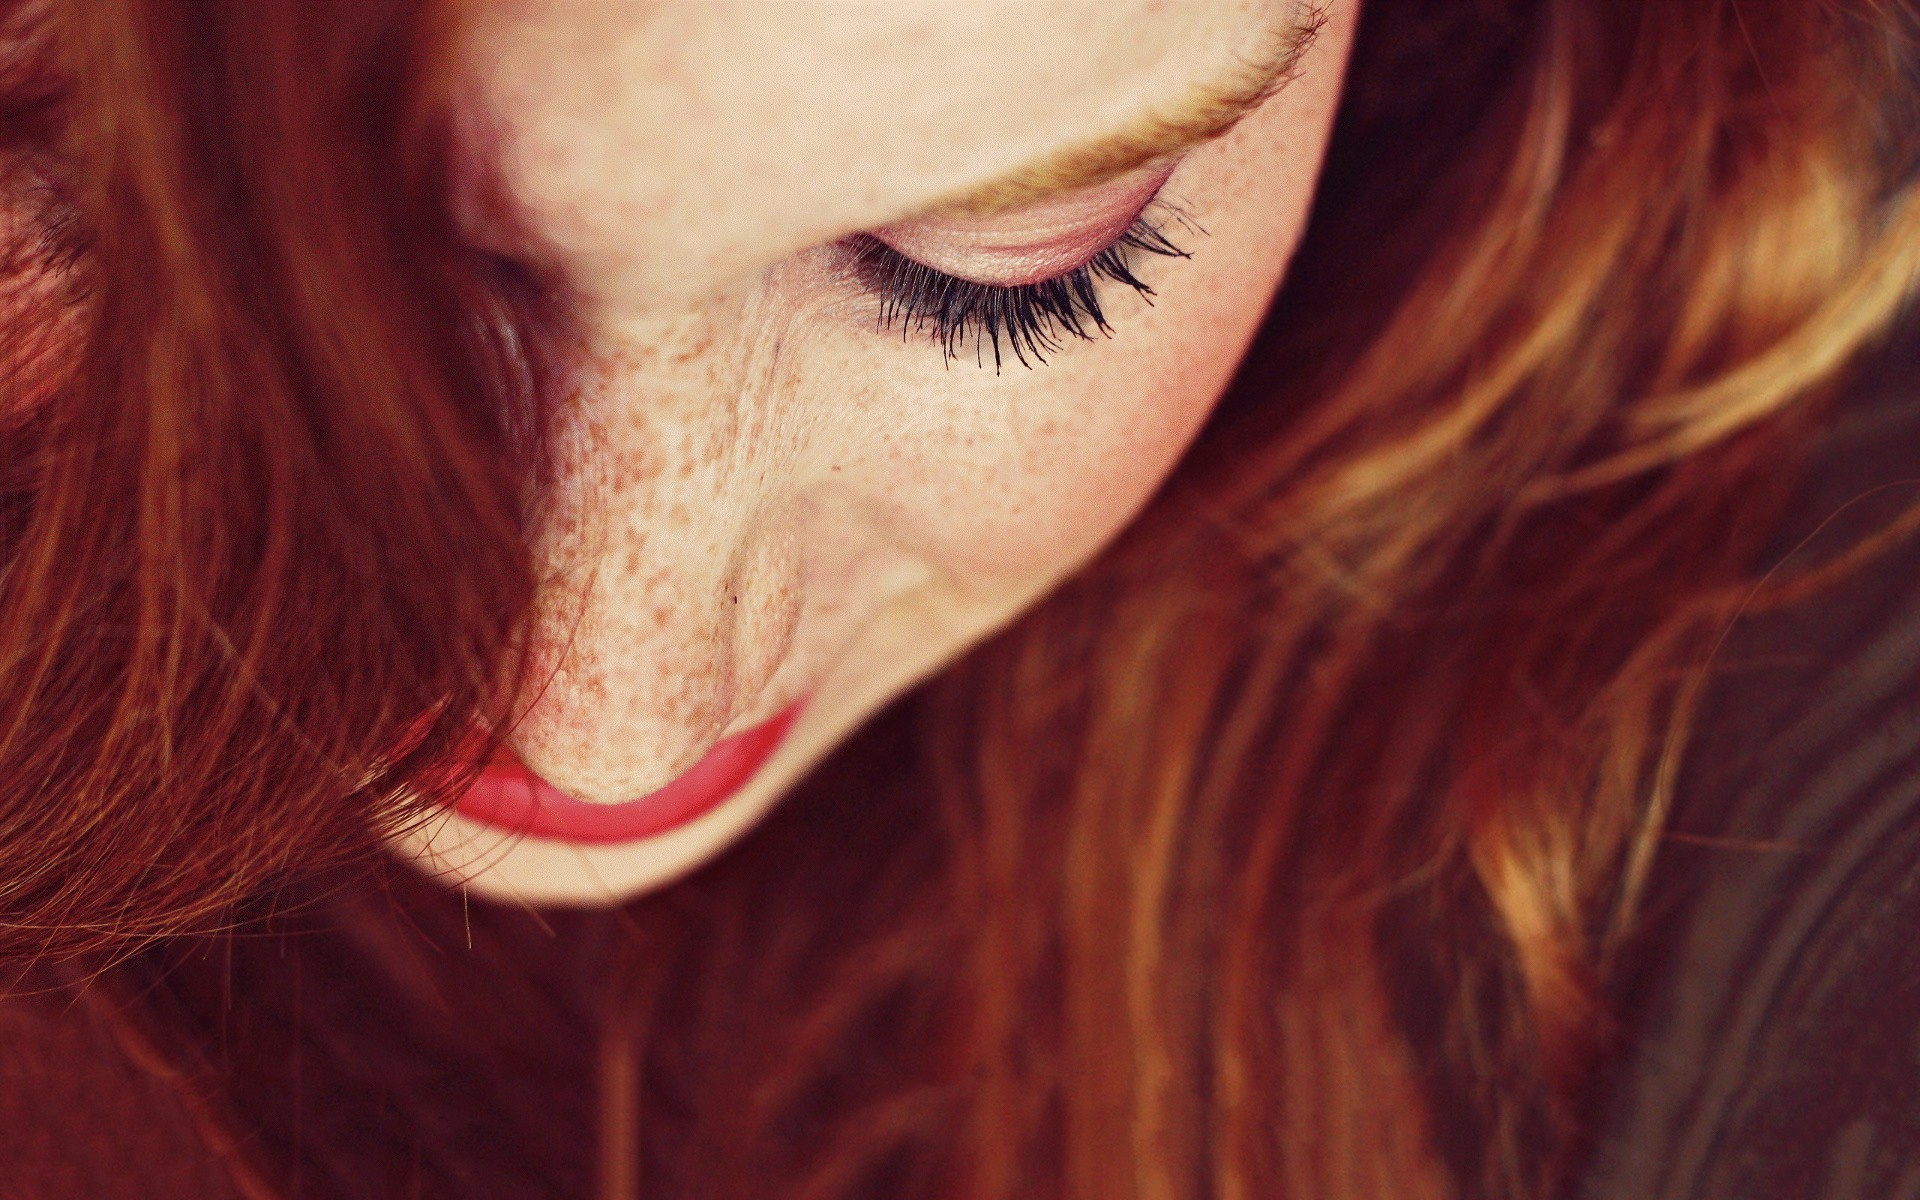 Res: 1920x1200, redhead-up-close-wallpaper-9068-9401-hd-wallpapers